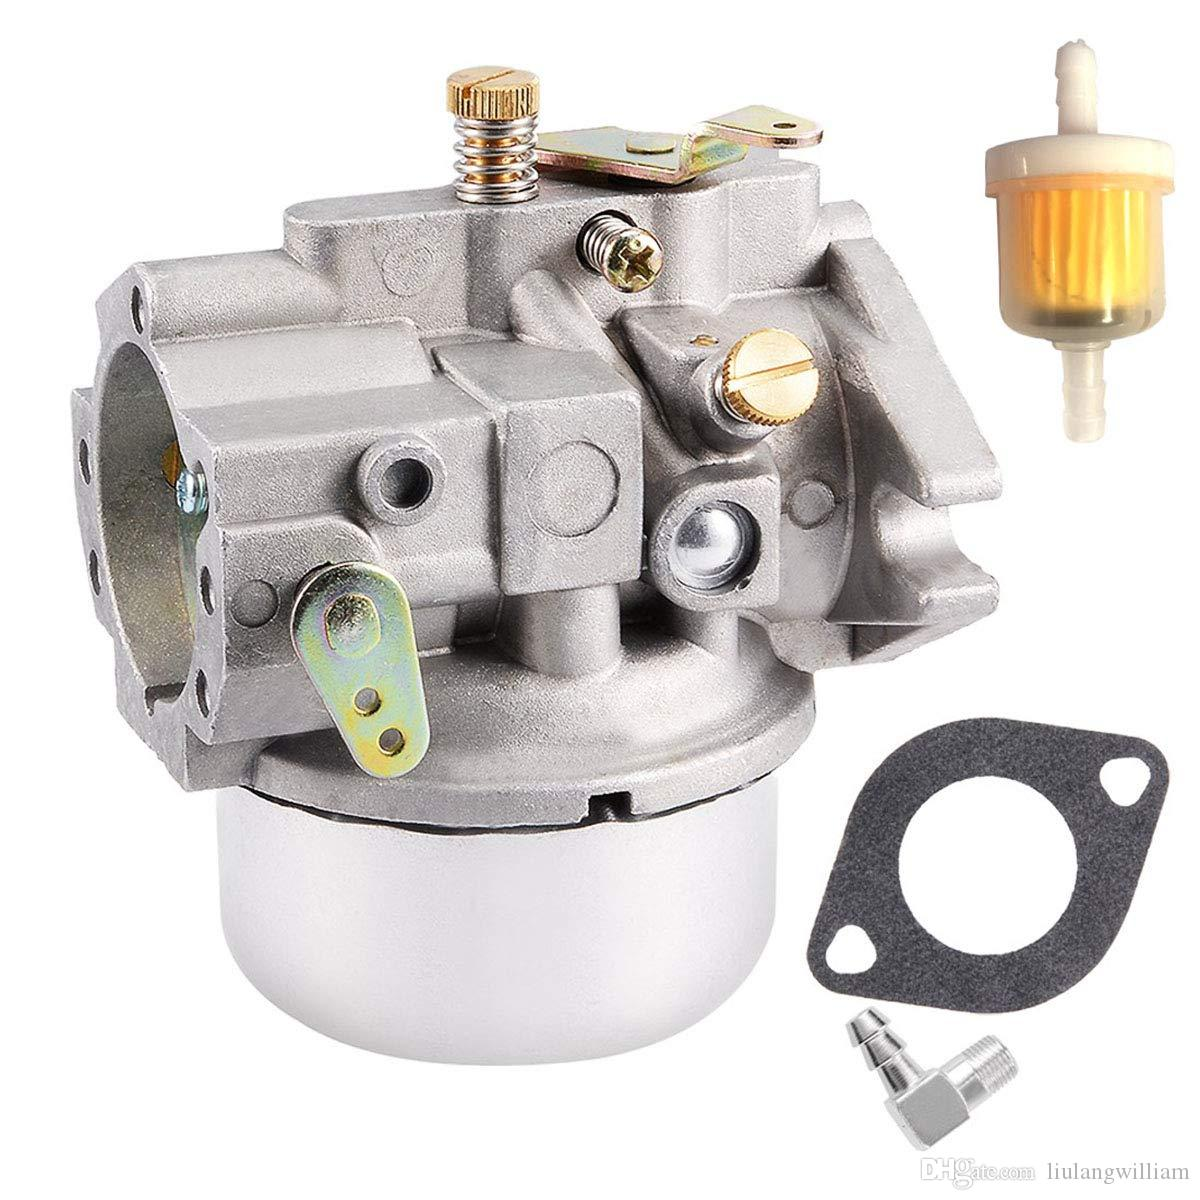 ZYHW New Carburetor Carb for Kohler Magnum KT17 KT18 KT19 M18 M20 MV18 MV20 Engine 52-053-09/18/28 with Gasket +Fuel Filter